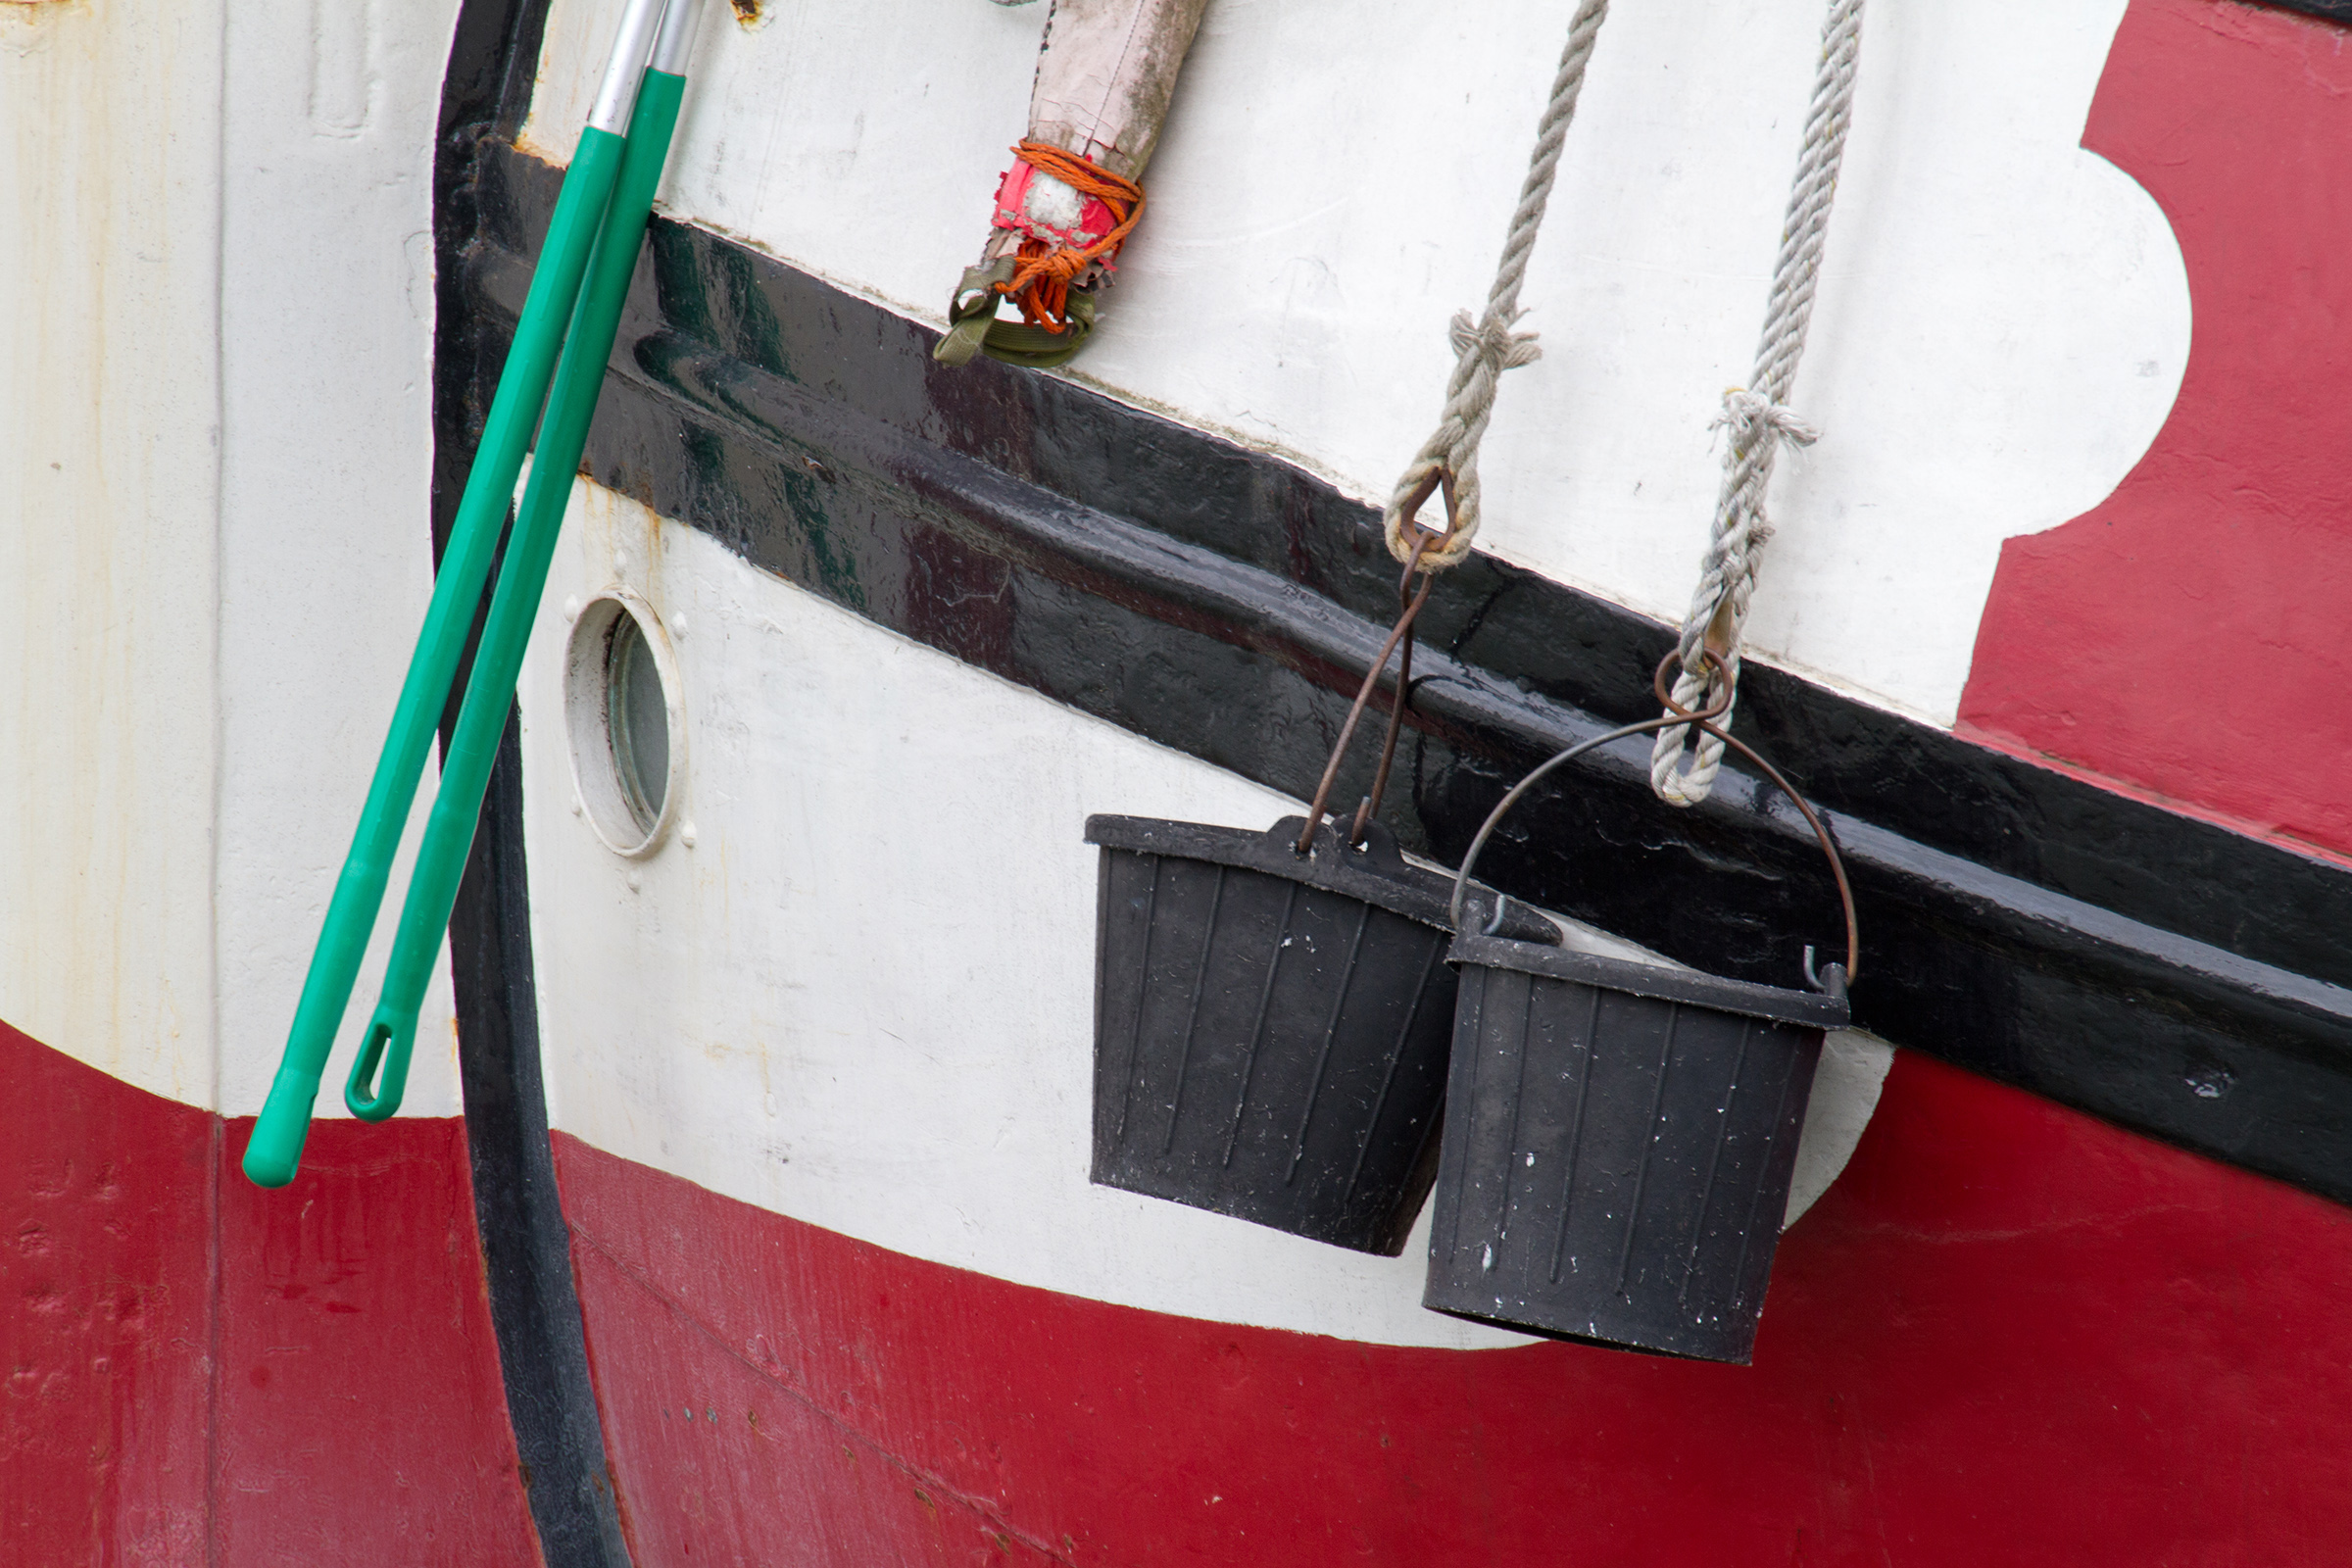 Boat, Anchored, Outdoor, Painting, Port, HQ Photo